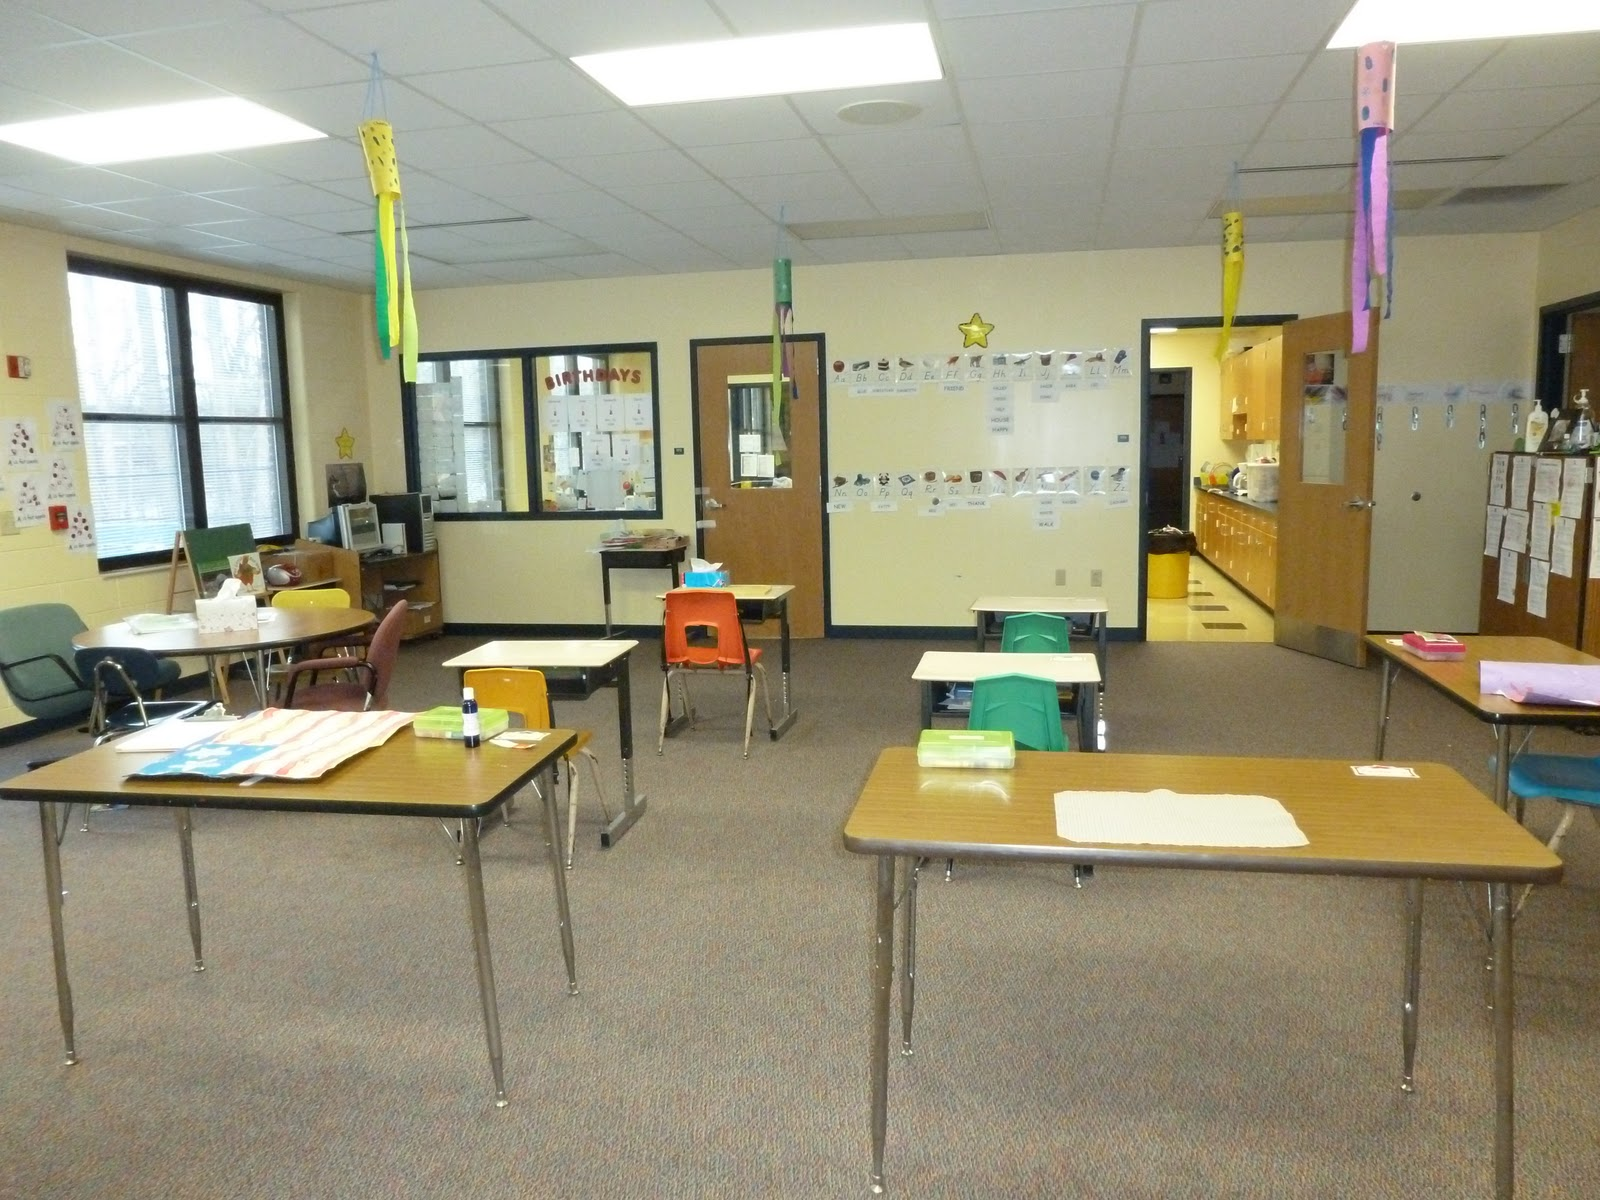 Sped-ventures: Clutter-Free Classroom week 1 challenge: before